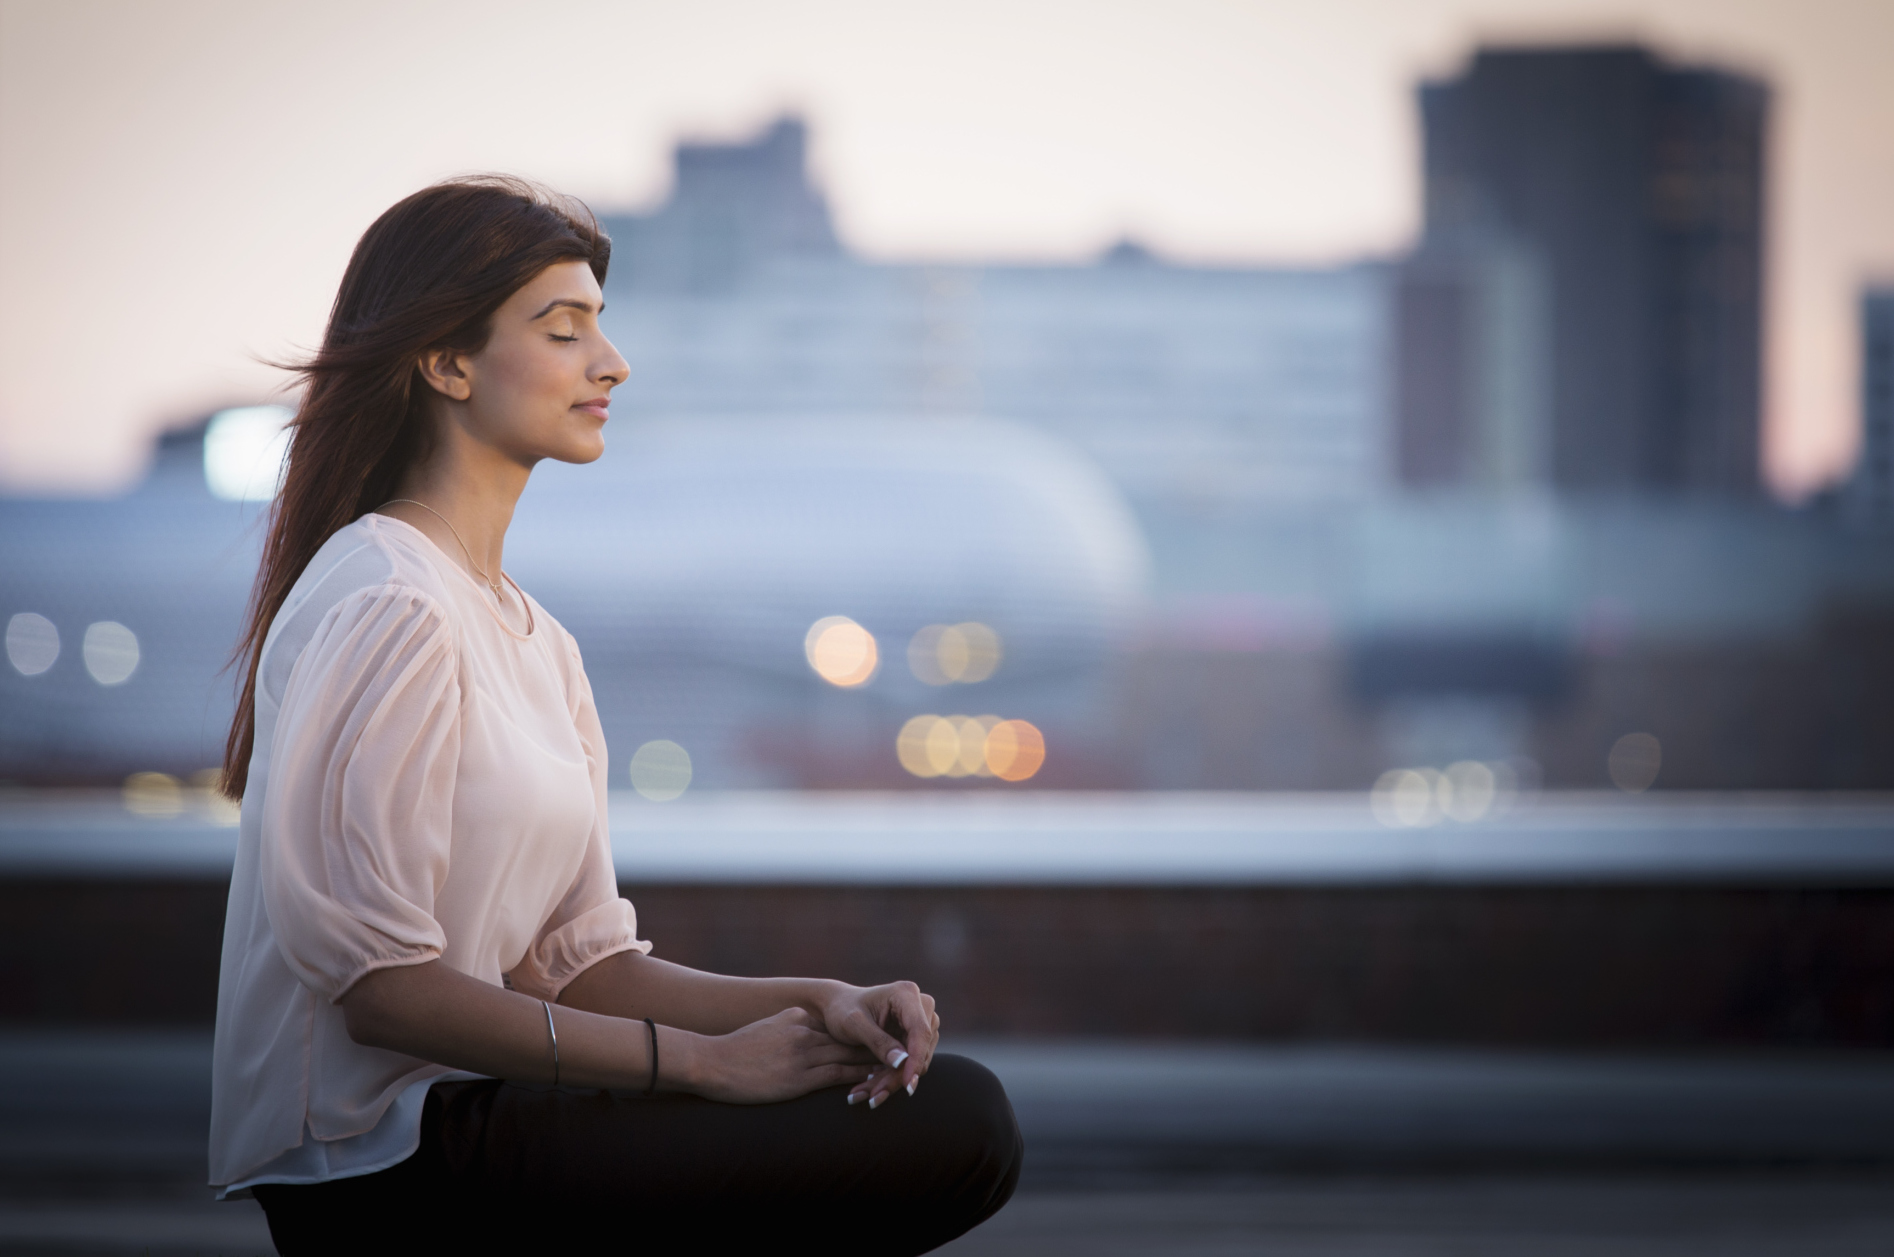 How did practicing mindfulness help you in your life? 3